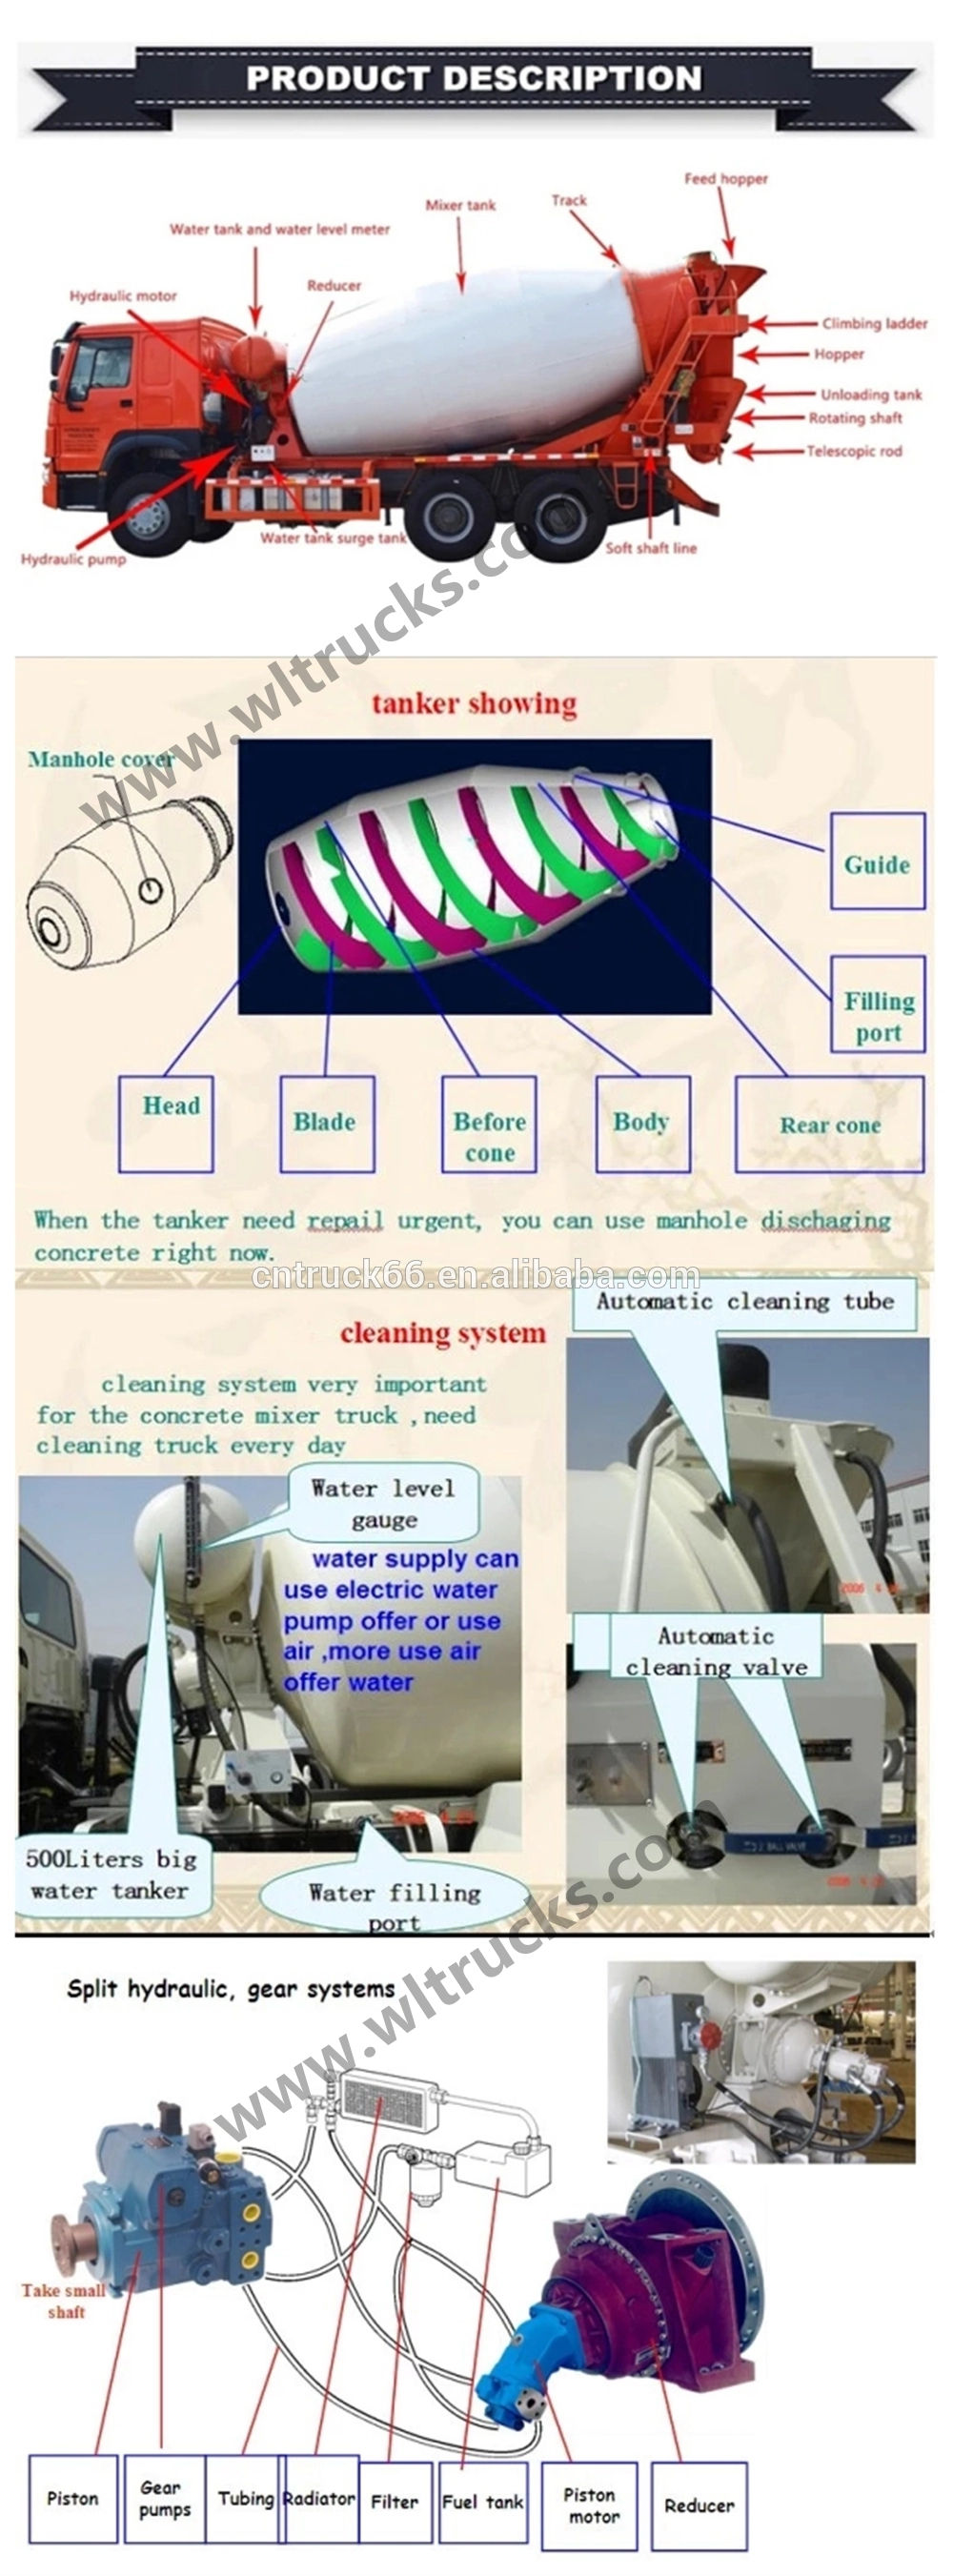 mixing truck Structural composition drawings